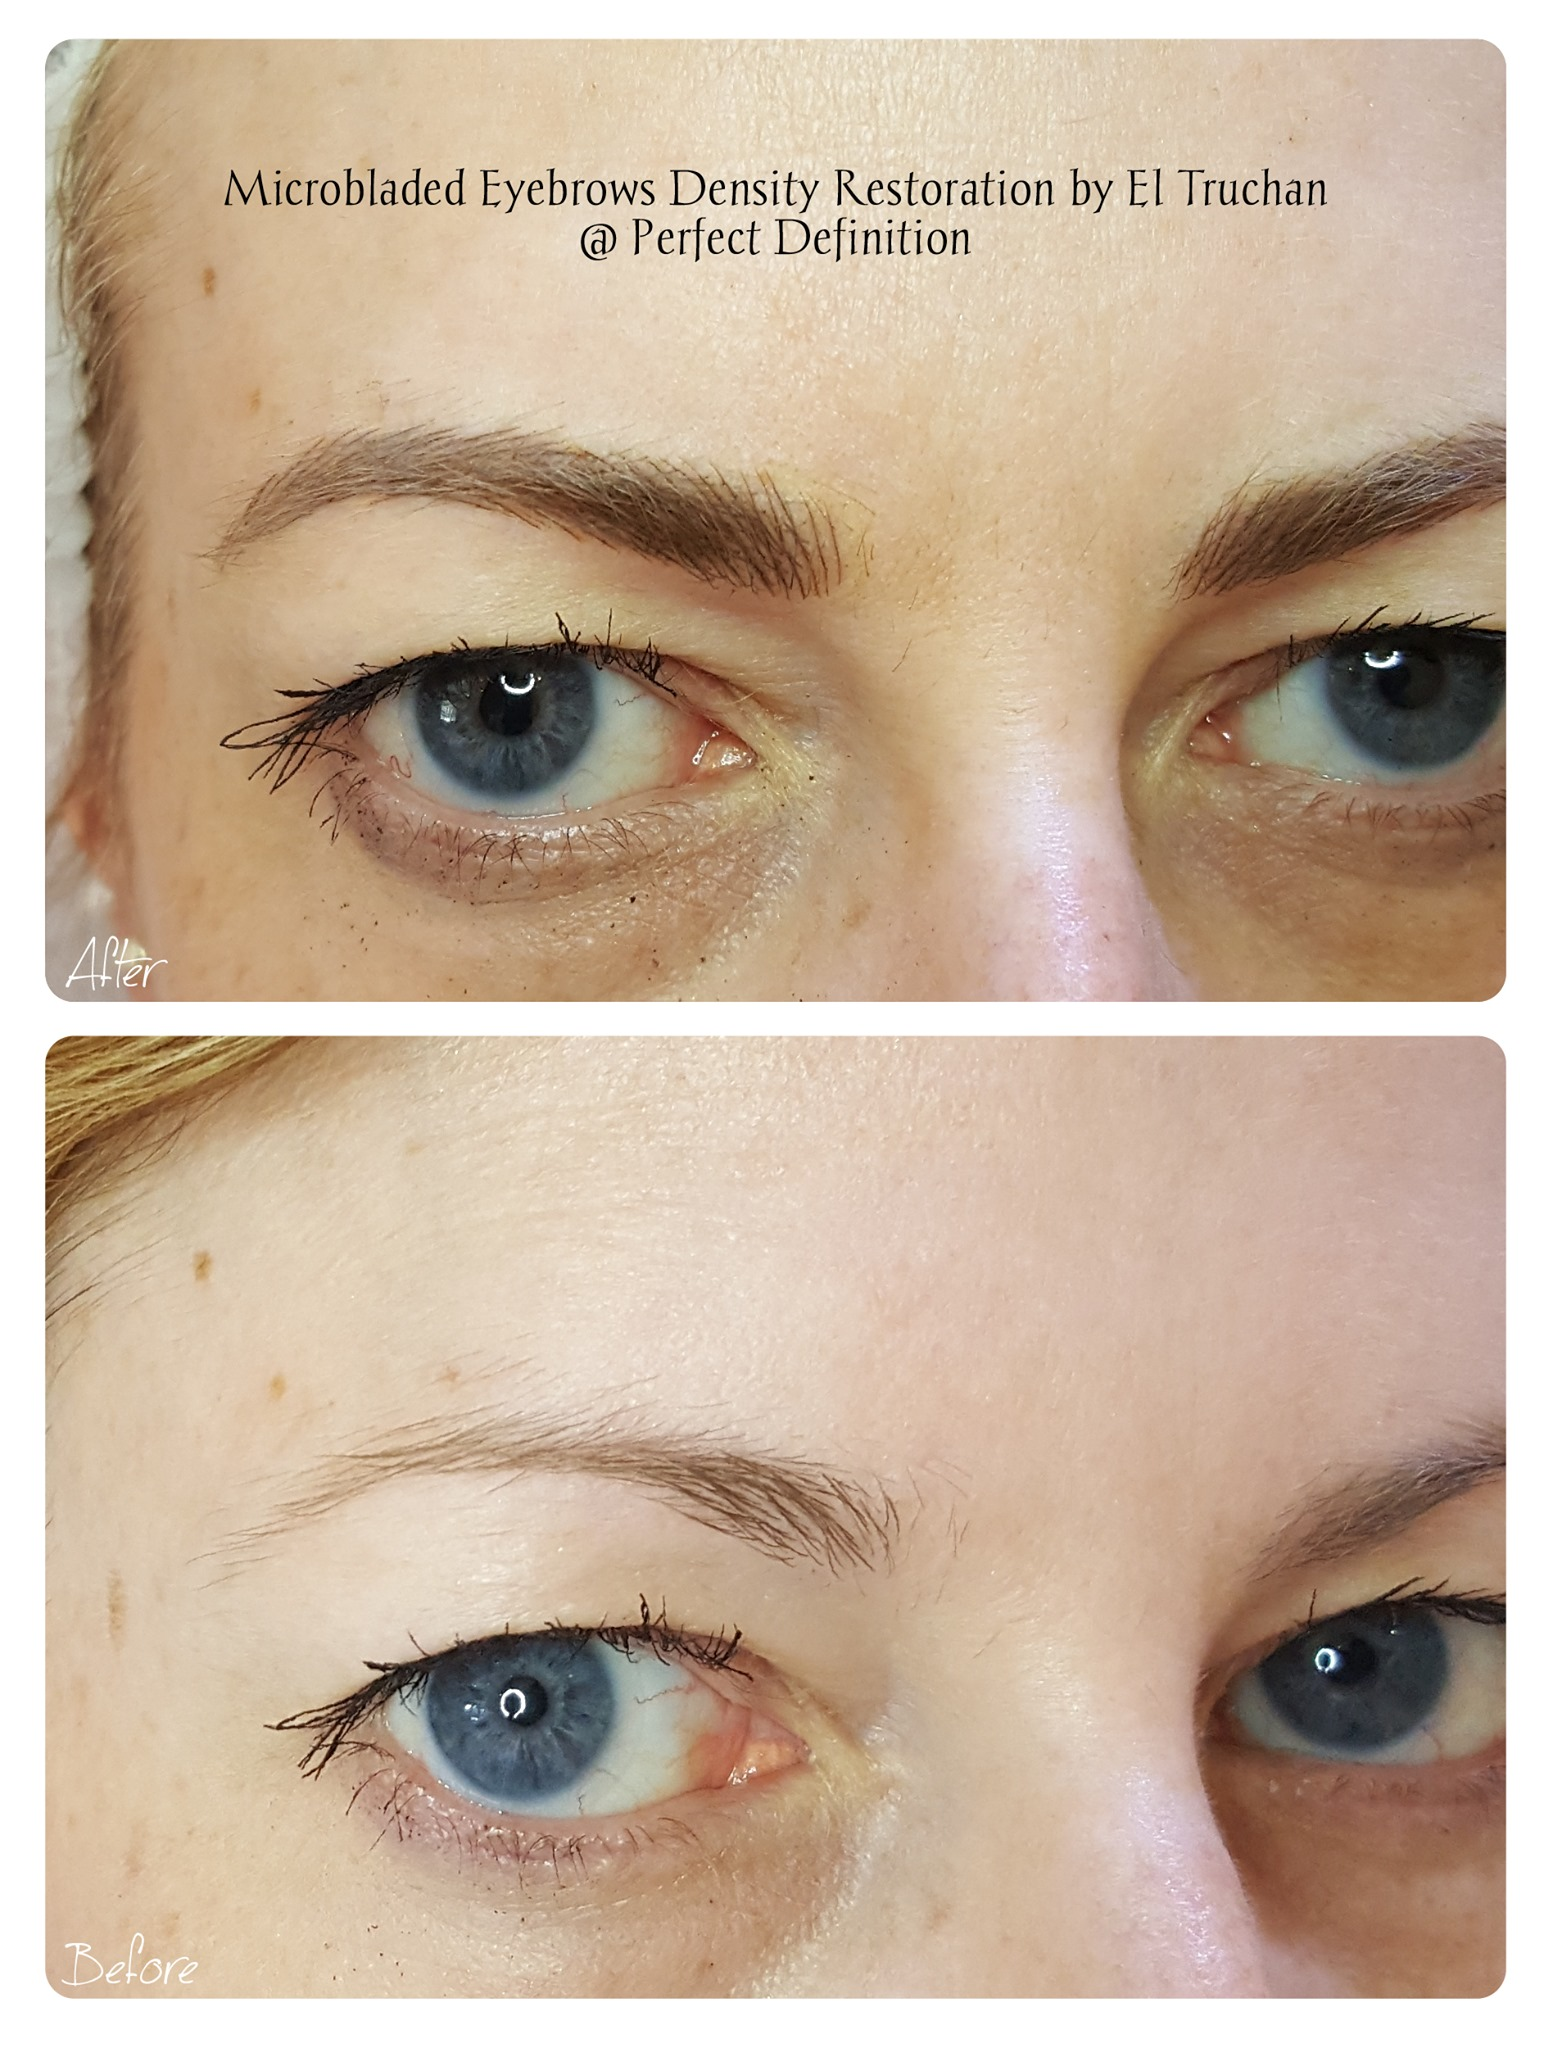 Microbladed Eyebrows Density Restoration